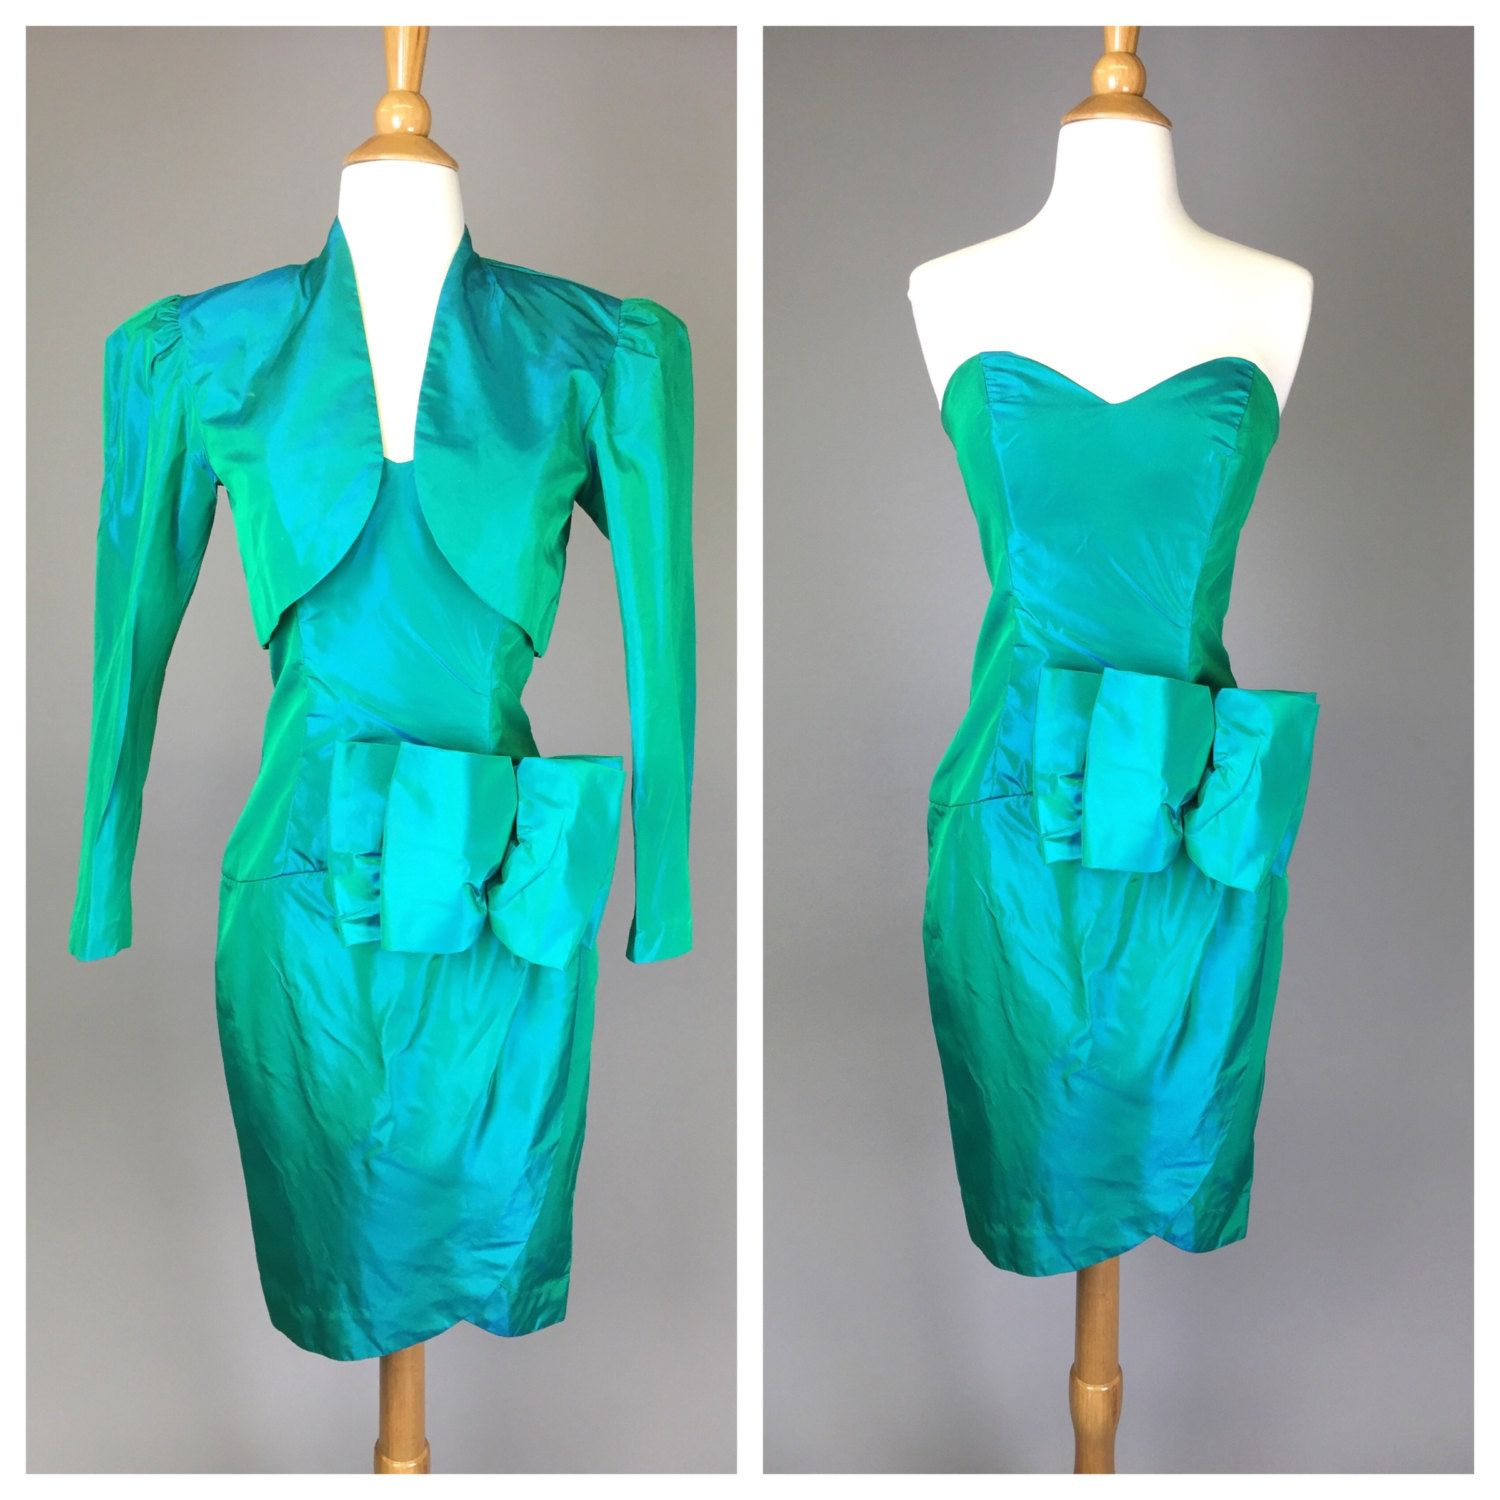 The Fantabulous - 80s Prom Dress Emerald Green 2 Piece Outfit ...